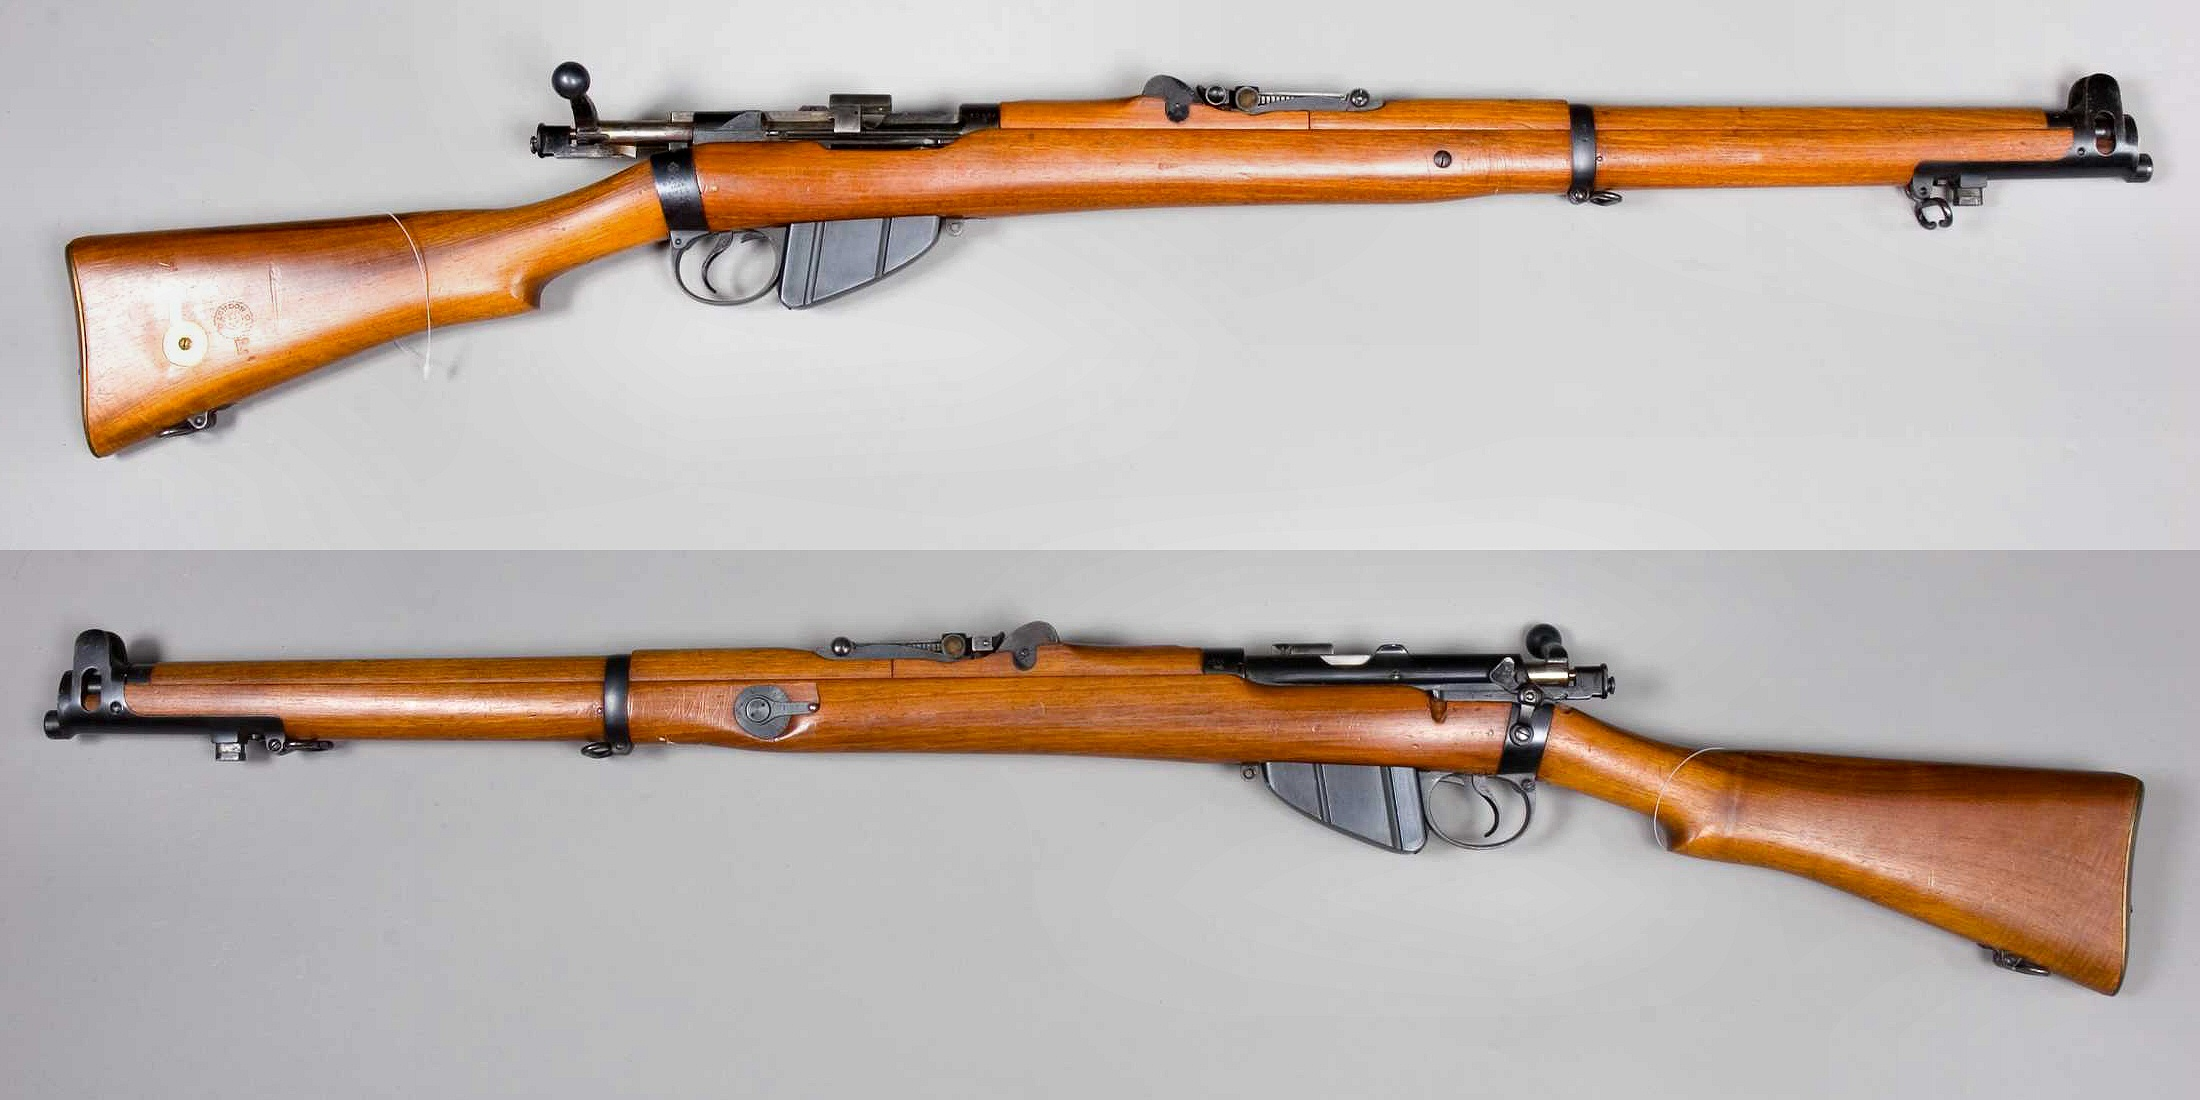 Leeenfield Wikiwand Mosin Nagant Parts Diagram Free Download Wiring Diagrams Pictures